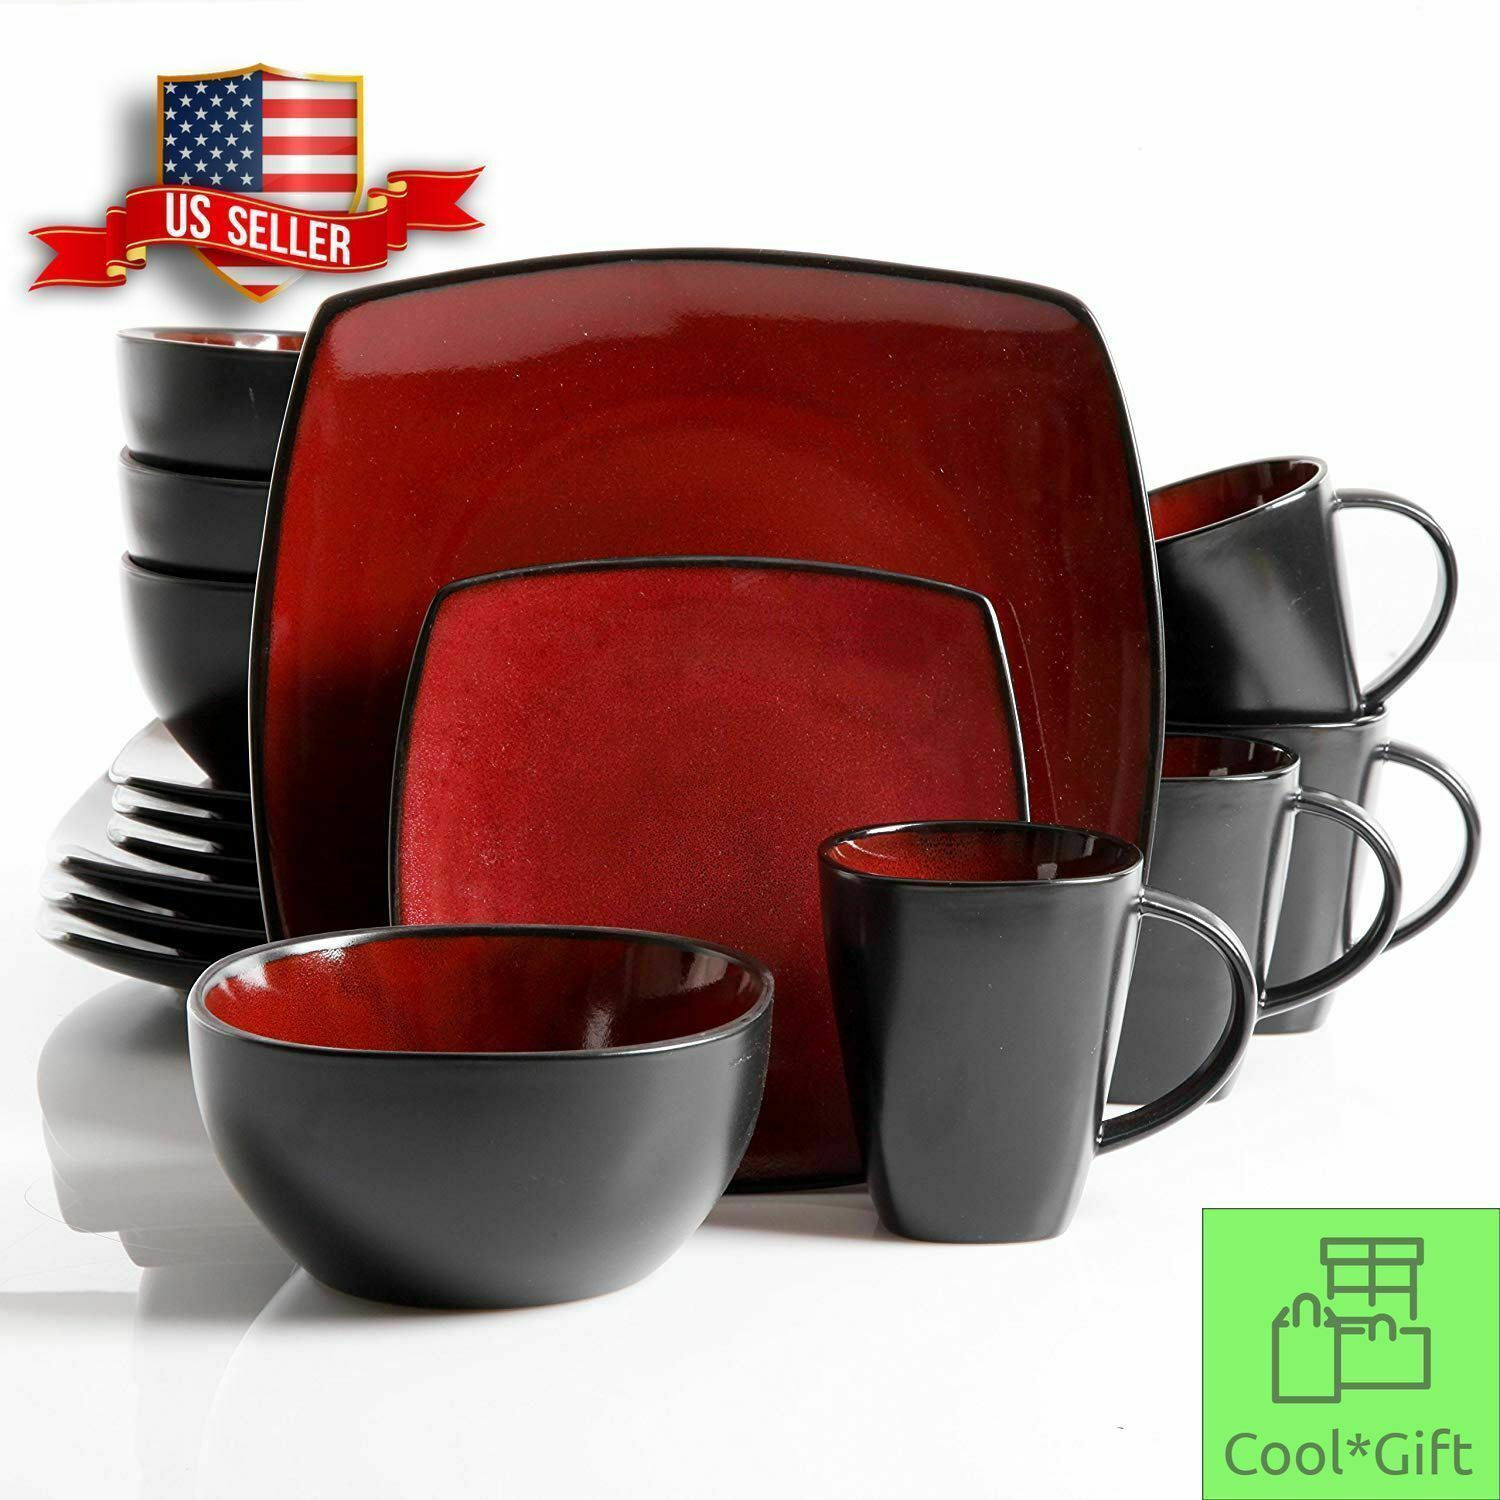 Dinnerware Set 16 Piece Square Dinner Plates Mugs Dishes Bowls Home Kitchen Red  - Dinnerware - Ideas of Dinnerware #Dinnerware #casualdinnerware Dinnerware Set 16 Piece Square Dinner Plates Mugs Dishes Bowls Home Kitchen Red  - Dinnerware - Ideas of Dinnerware #Dinnerware #casualdinnerware Dinnerware Set 16 Piece Square Dinner Plates Mugs Dishes Bowls Home Kitchen Red  - Dinnerware - Ideas of Dinnerware #Dinnerware #casualdinnerware Dinnerware Set 16 Piece Square Dinner Plates Mugs Dishes Bowls #casualdinnerware